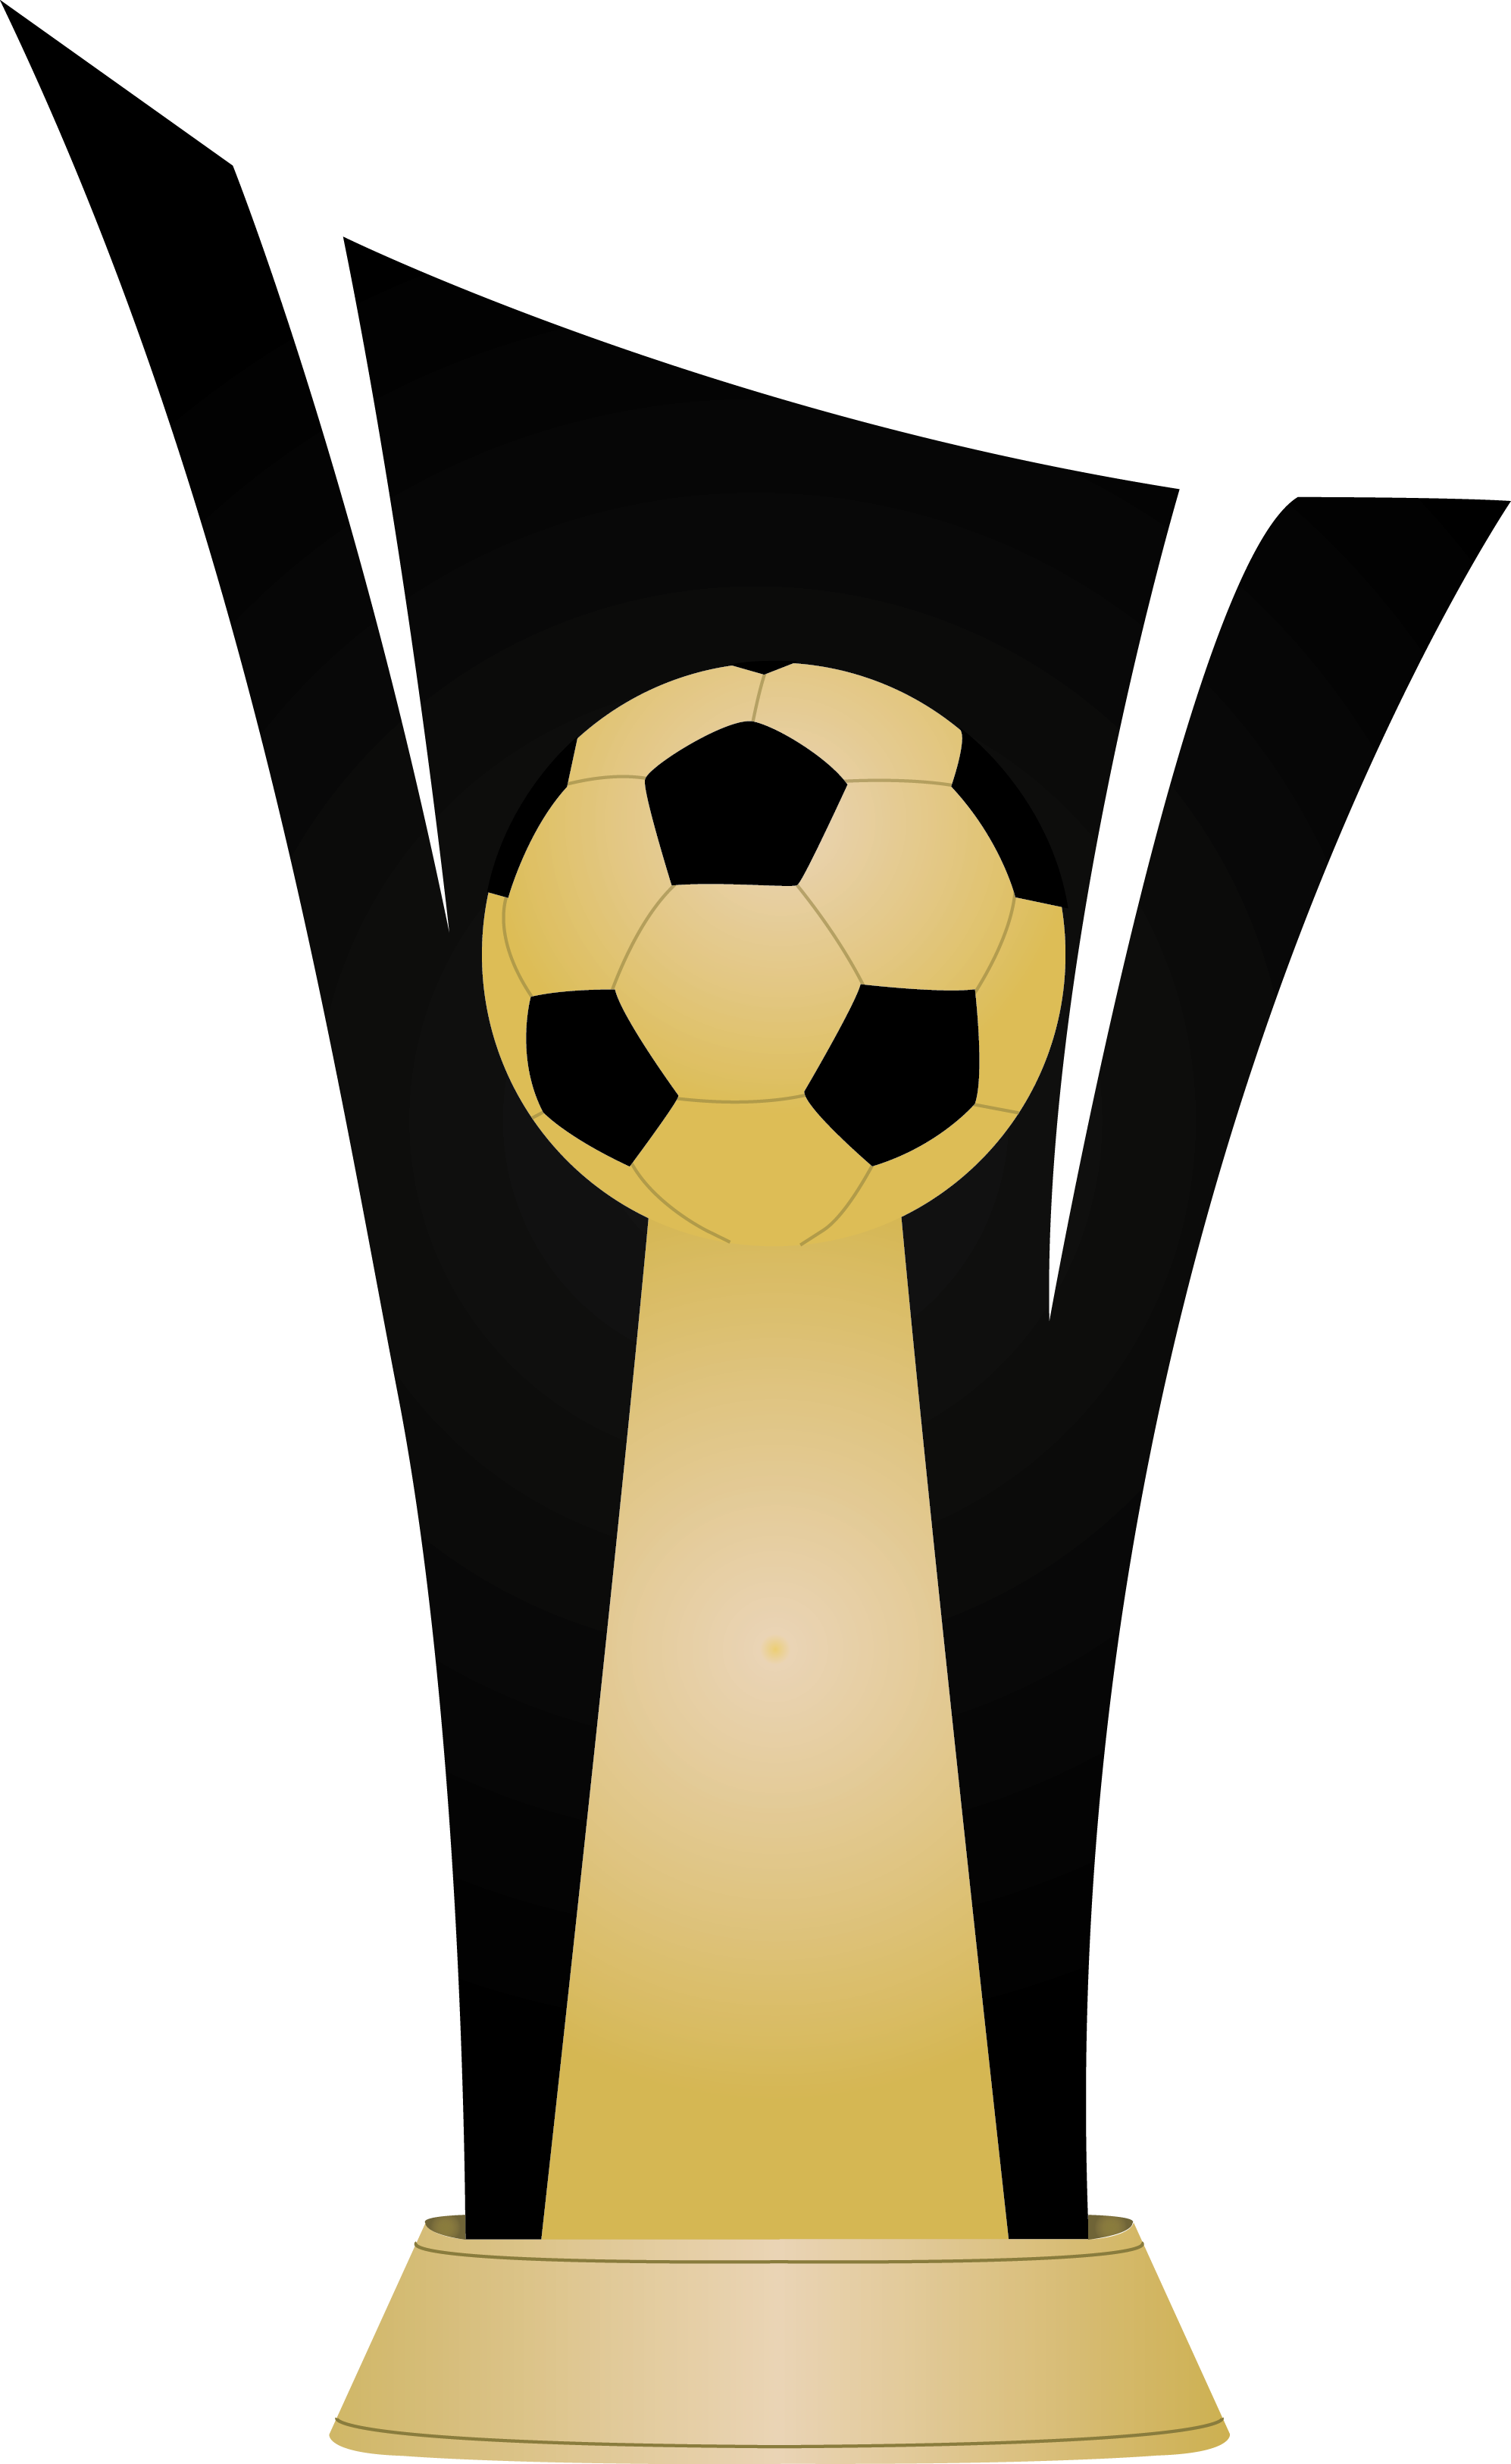 File:CONCACAF Champions League Trophy Icon.png.